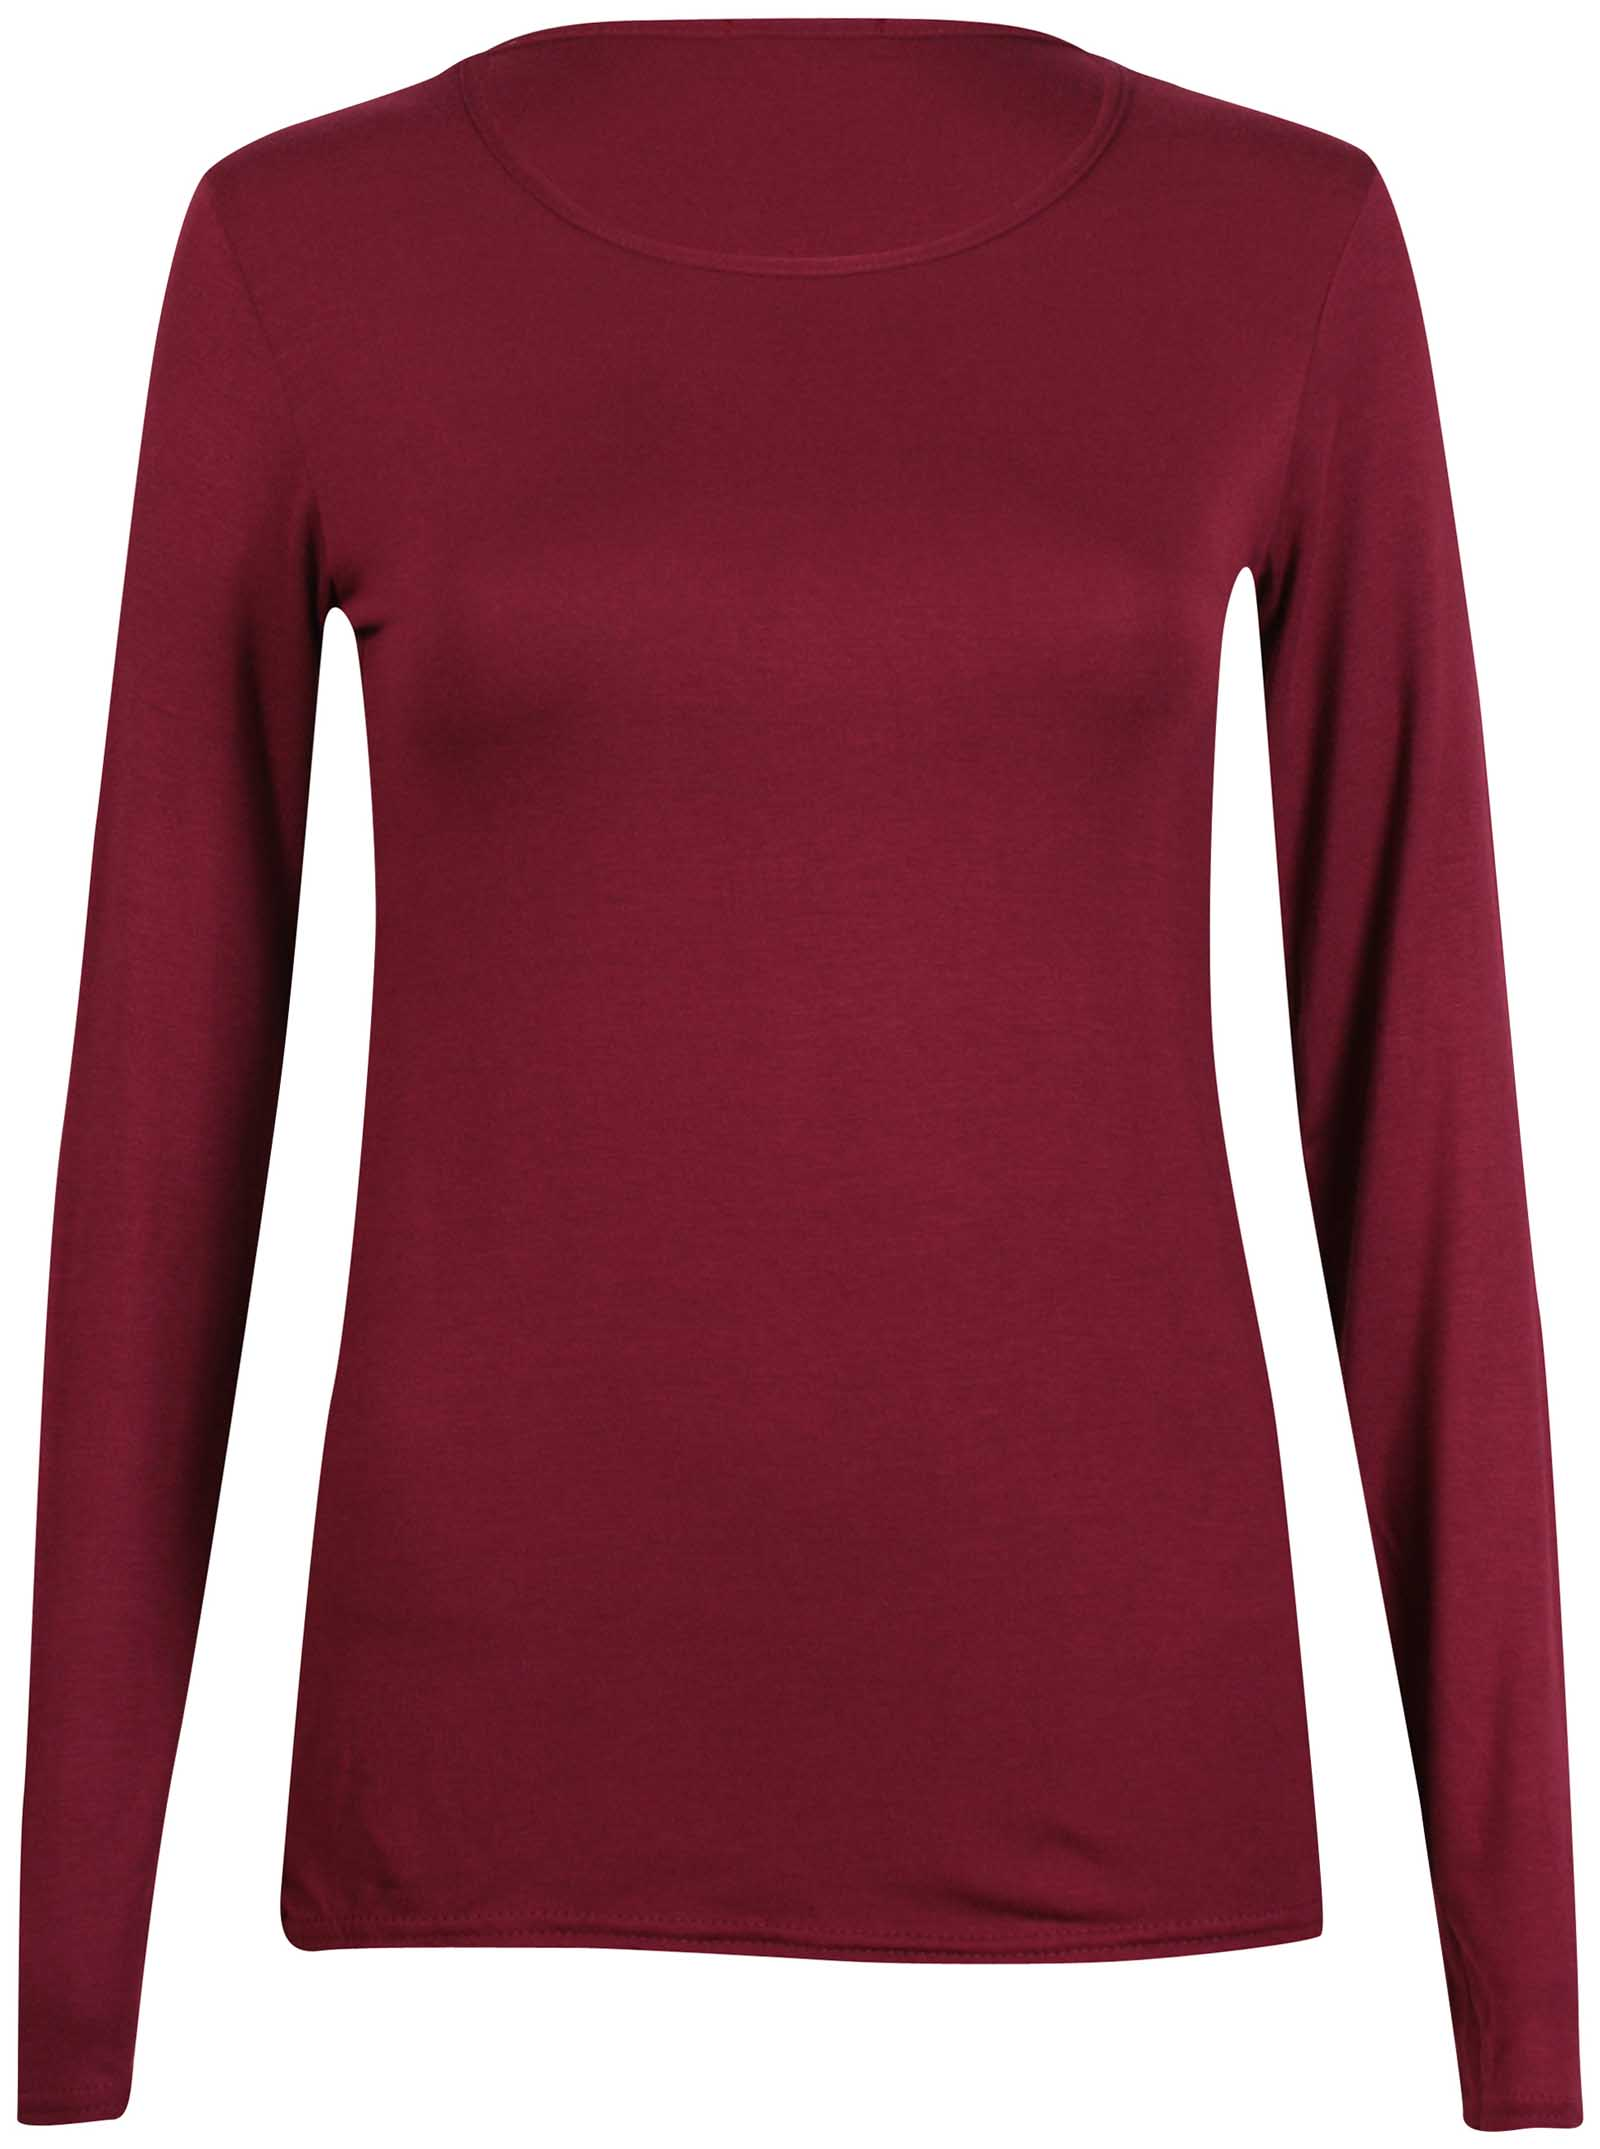 Find womens plain long sleeve shirt at ShopStyle. Shop the latest collection of womens plain long sleeve shirt from the most popular stores - all in.